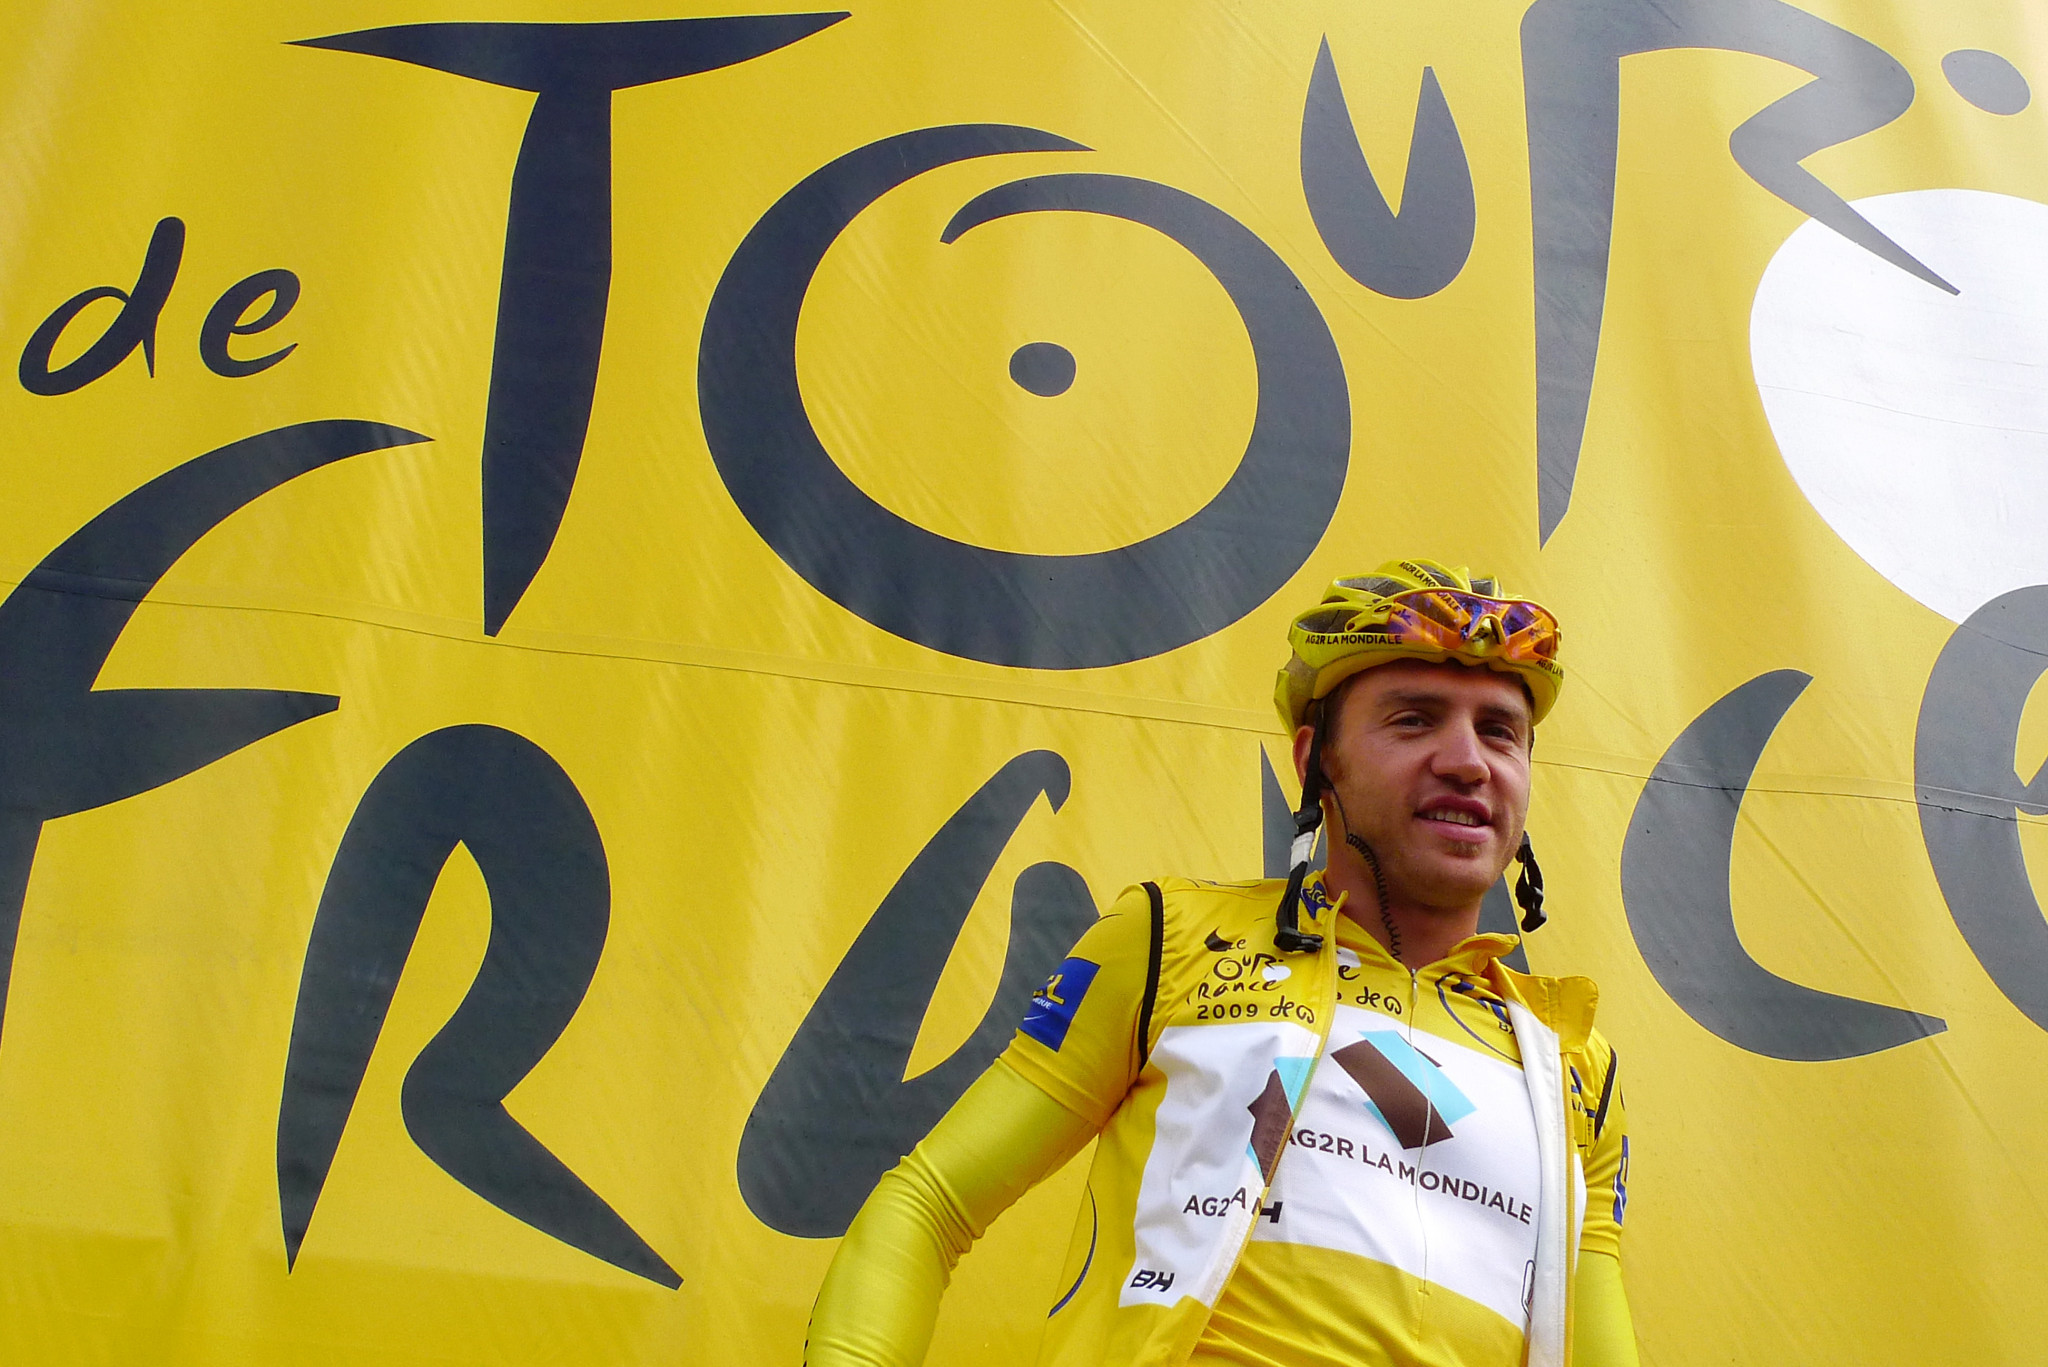 Rinaldo Nocentini led the Tour de France for eight stages in 2009 ©Getty Images